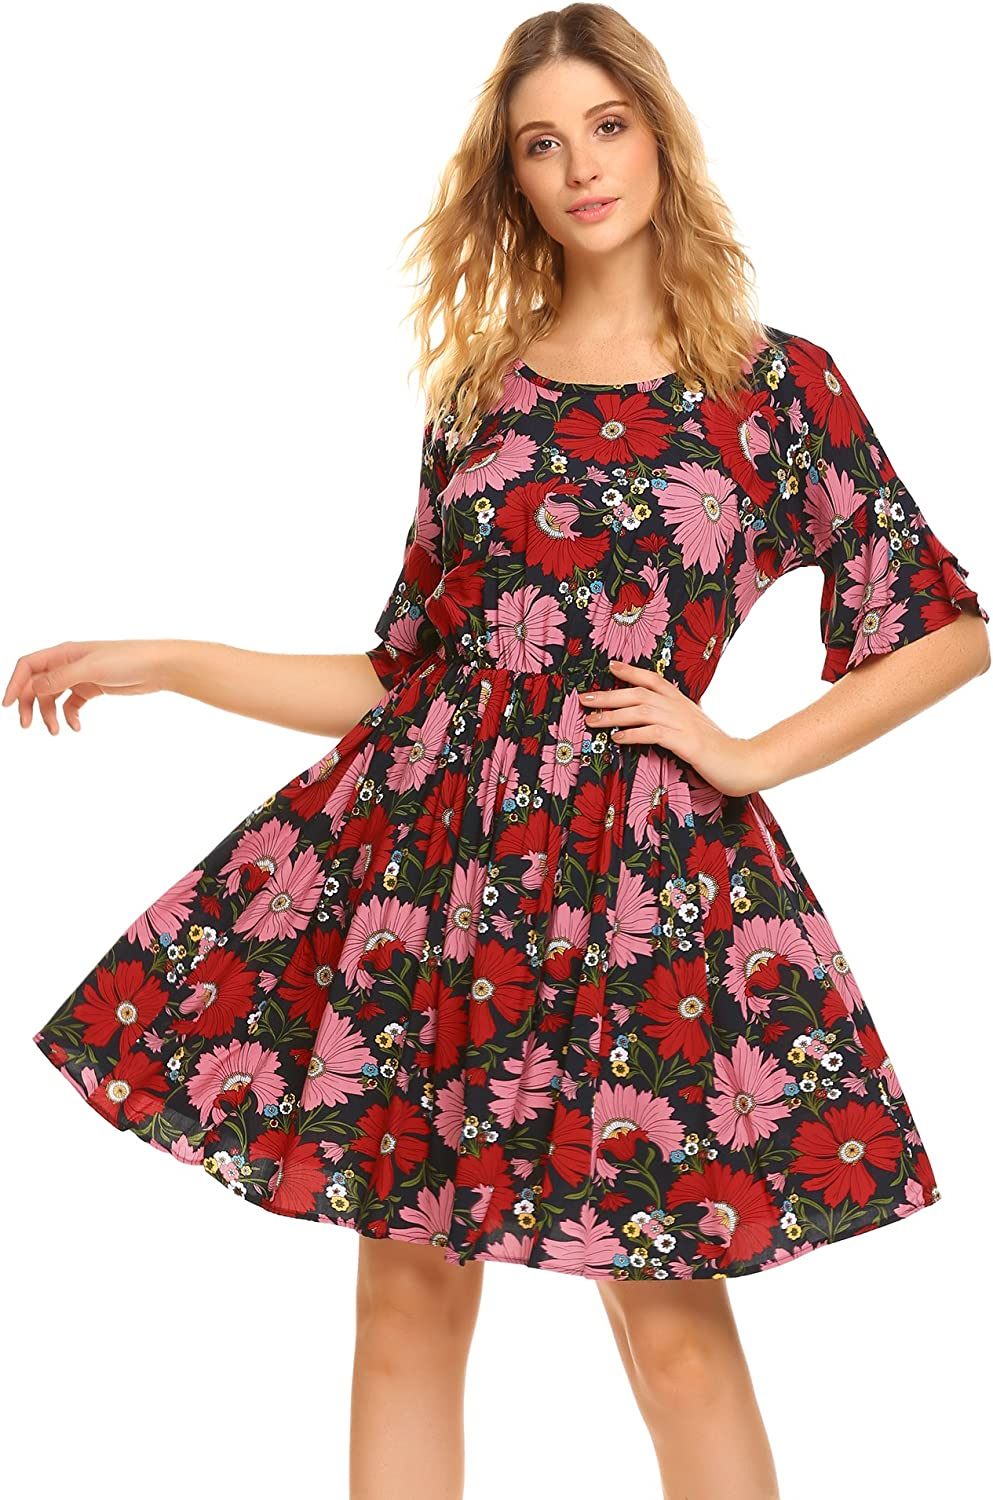 BEAUTYTALK Womens Floral Print Ruffle Sleeve Hollow Out Belted A Line Midi Dress